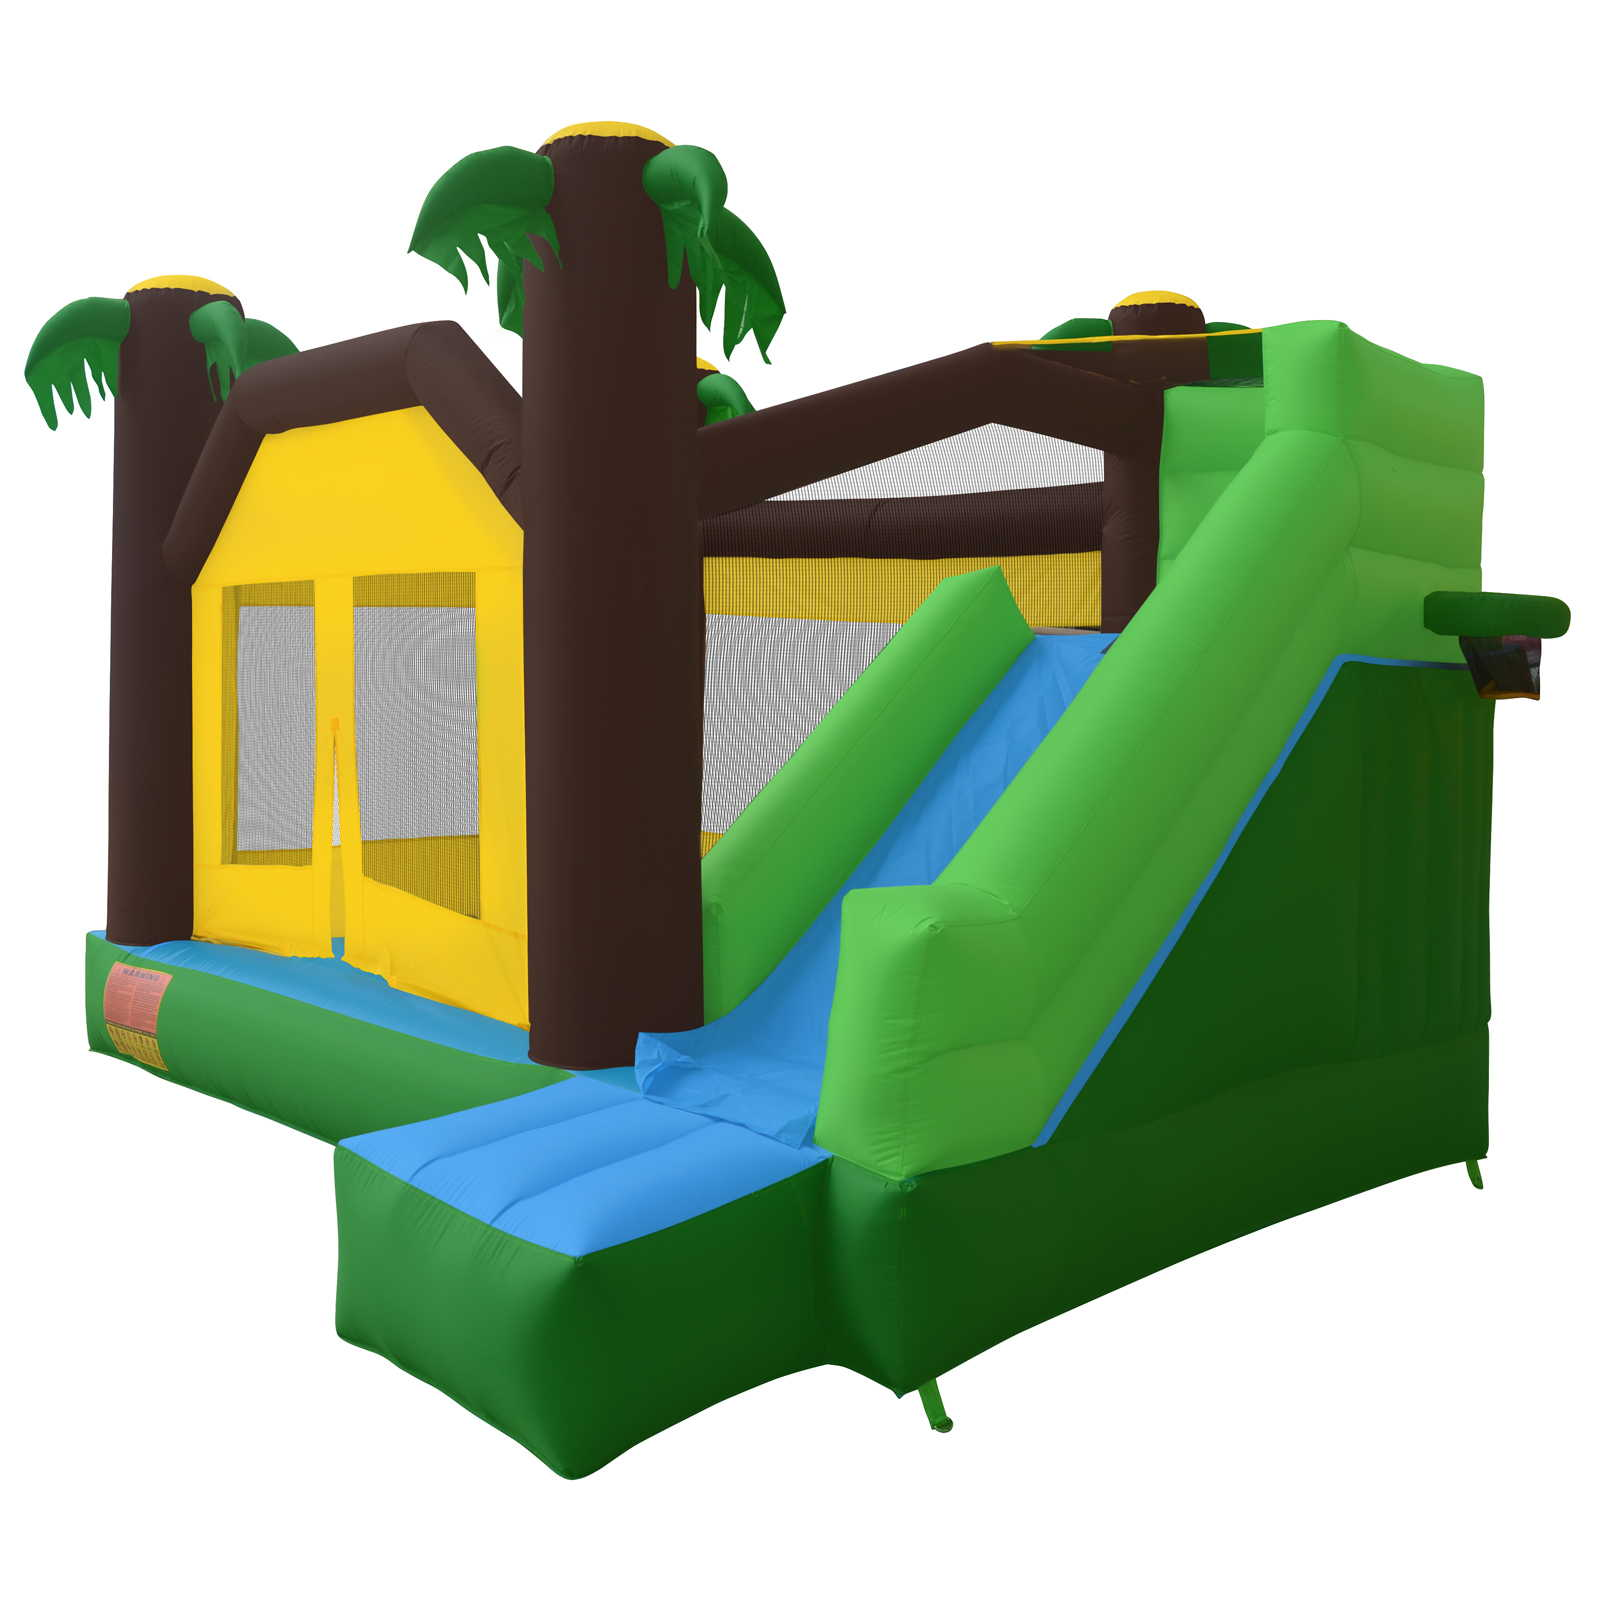 Cloud 9 Jungle Jumper Bounce House - Inflatable Bouncing Jumper with Climbing Wall and Slide